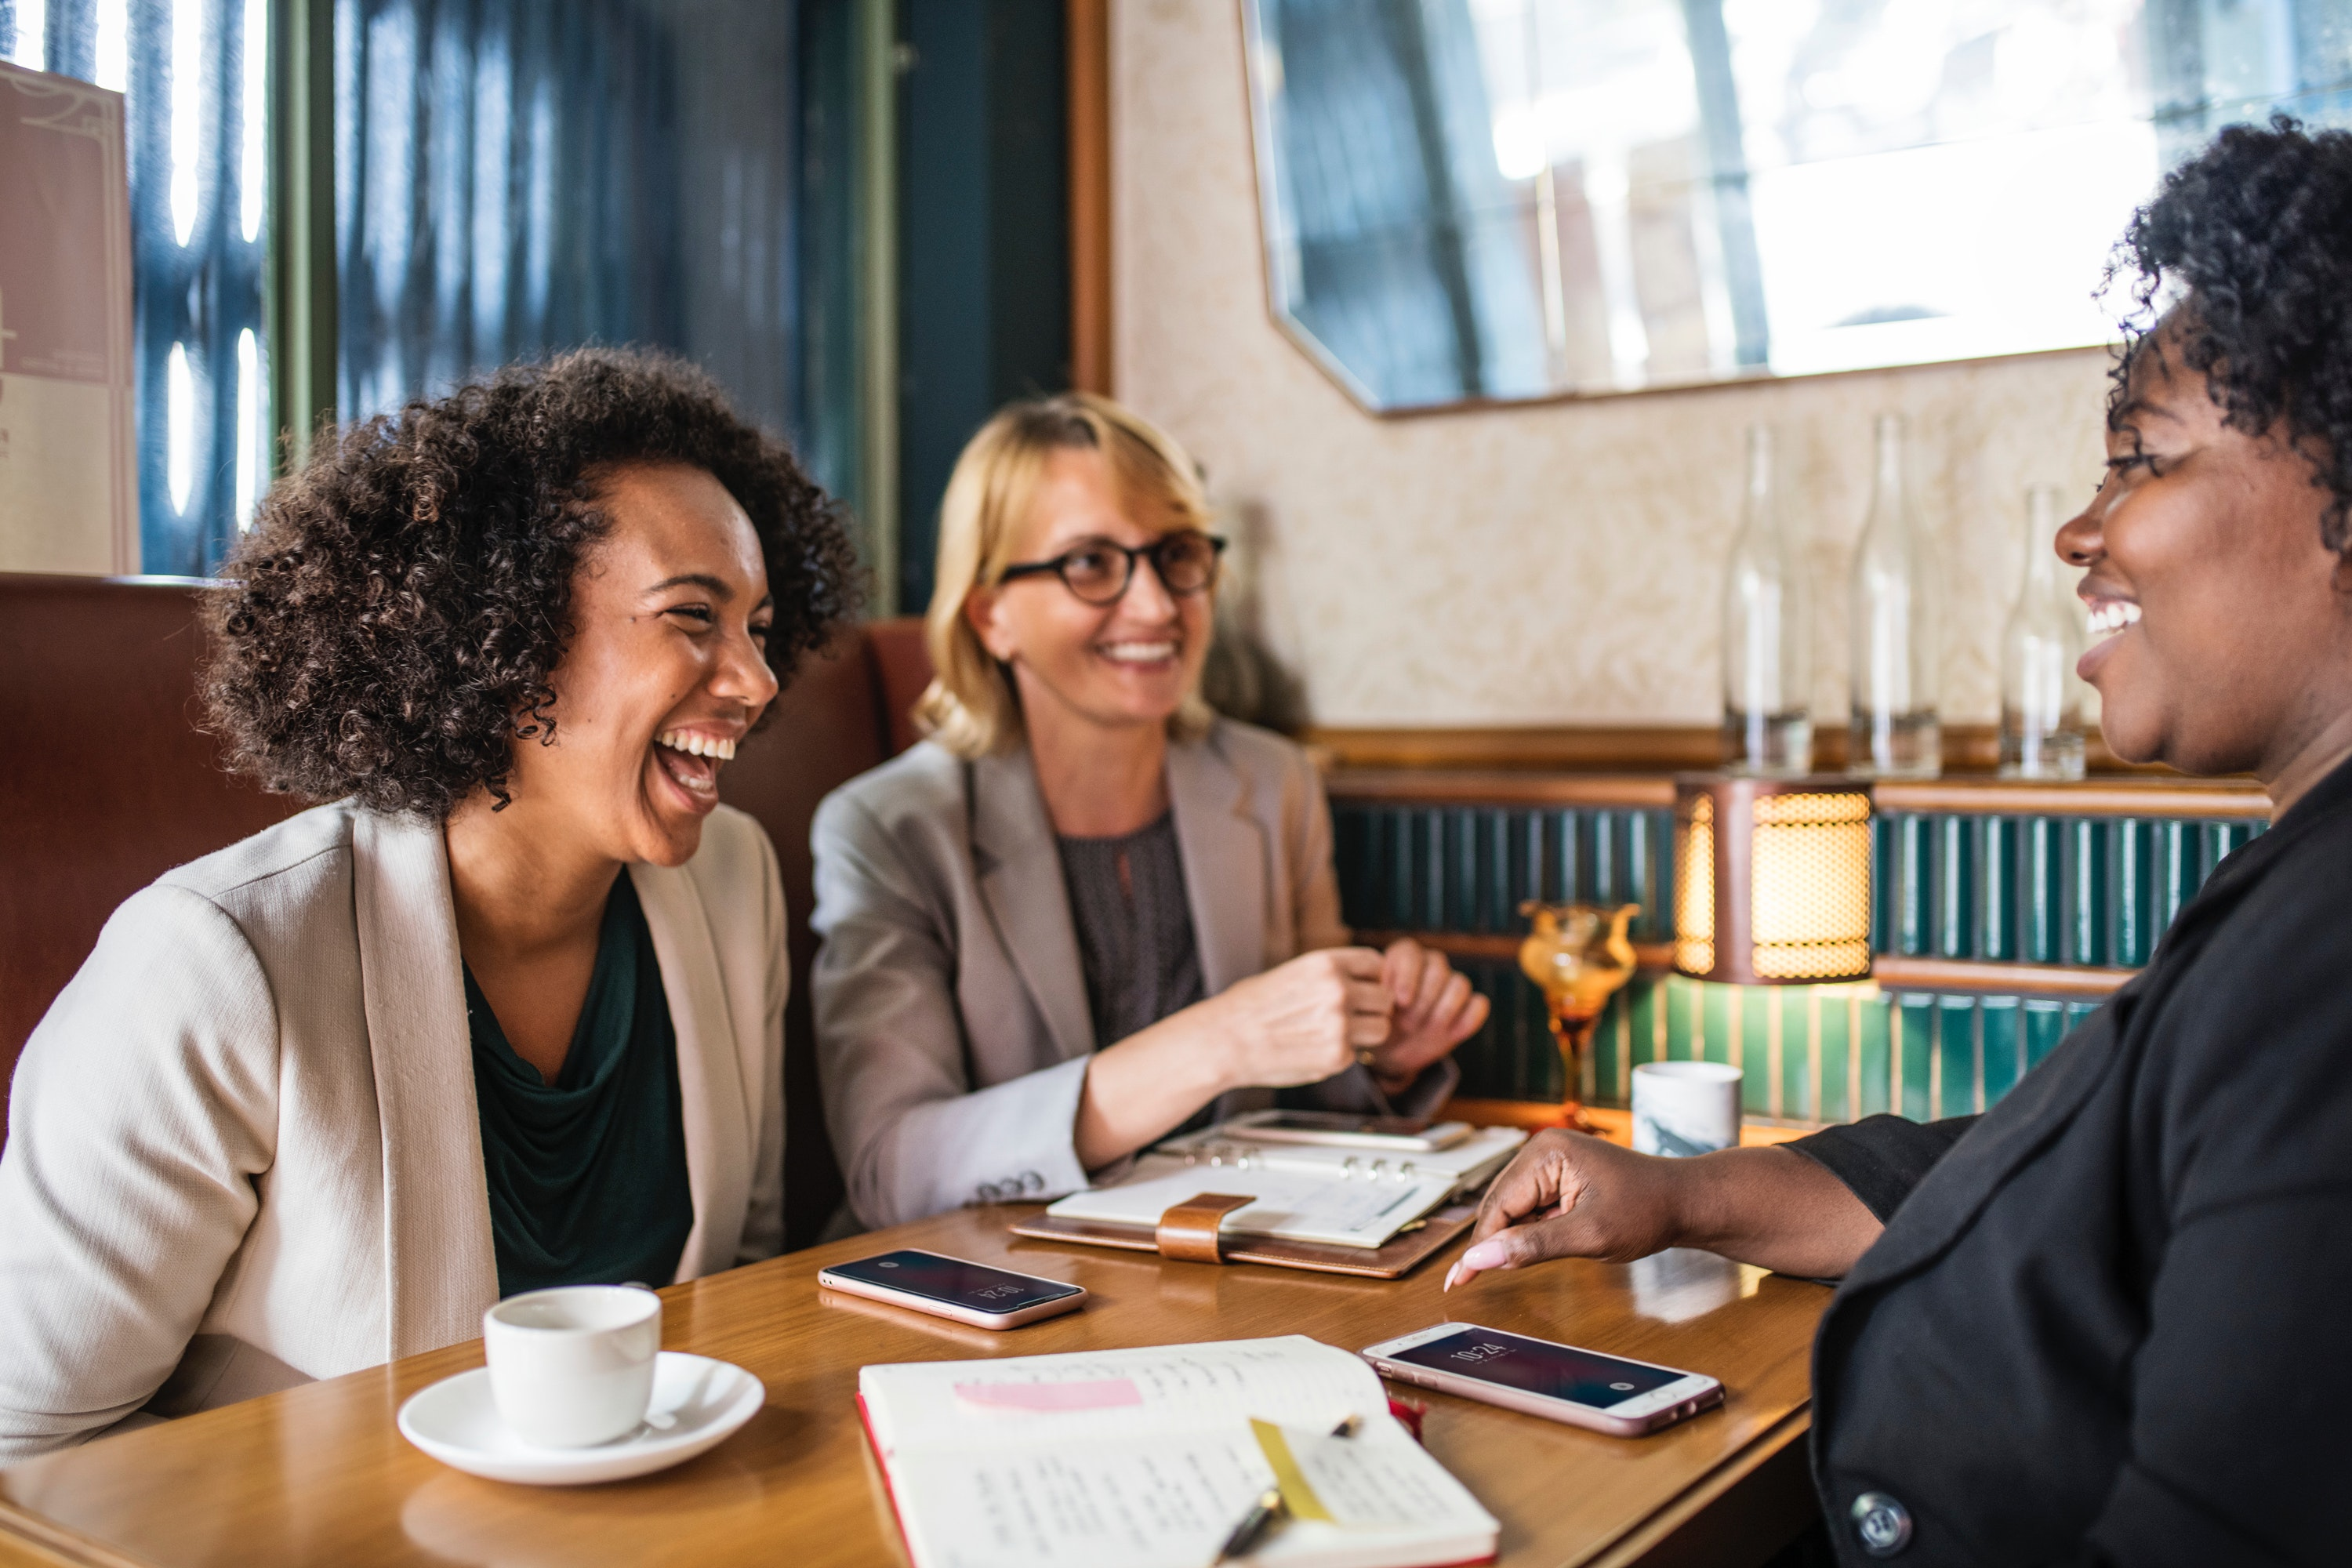 Why a workplace book club could be good for your health